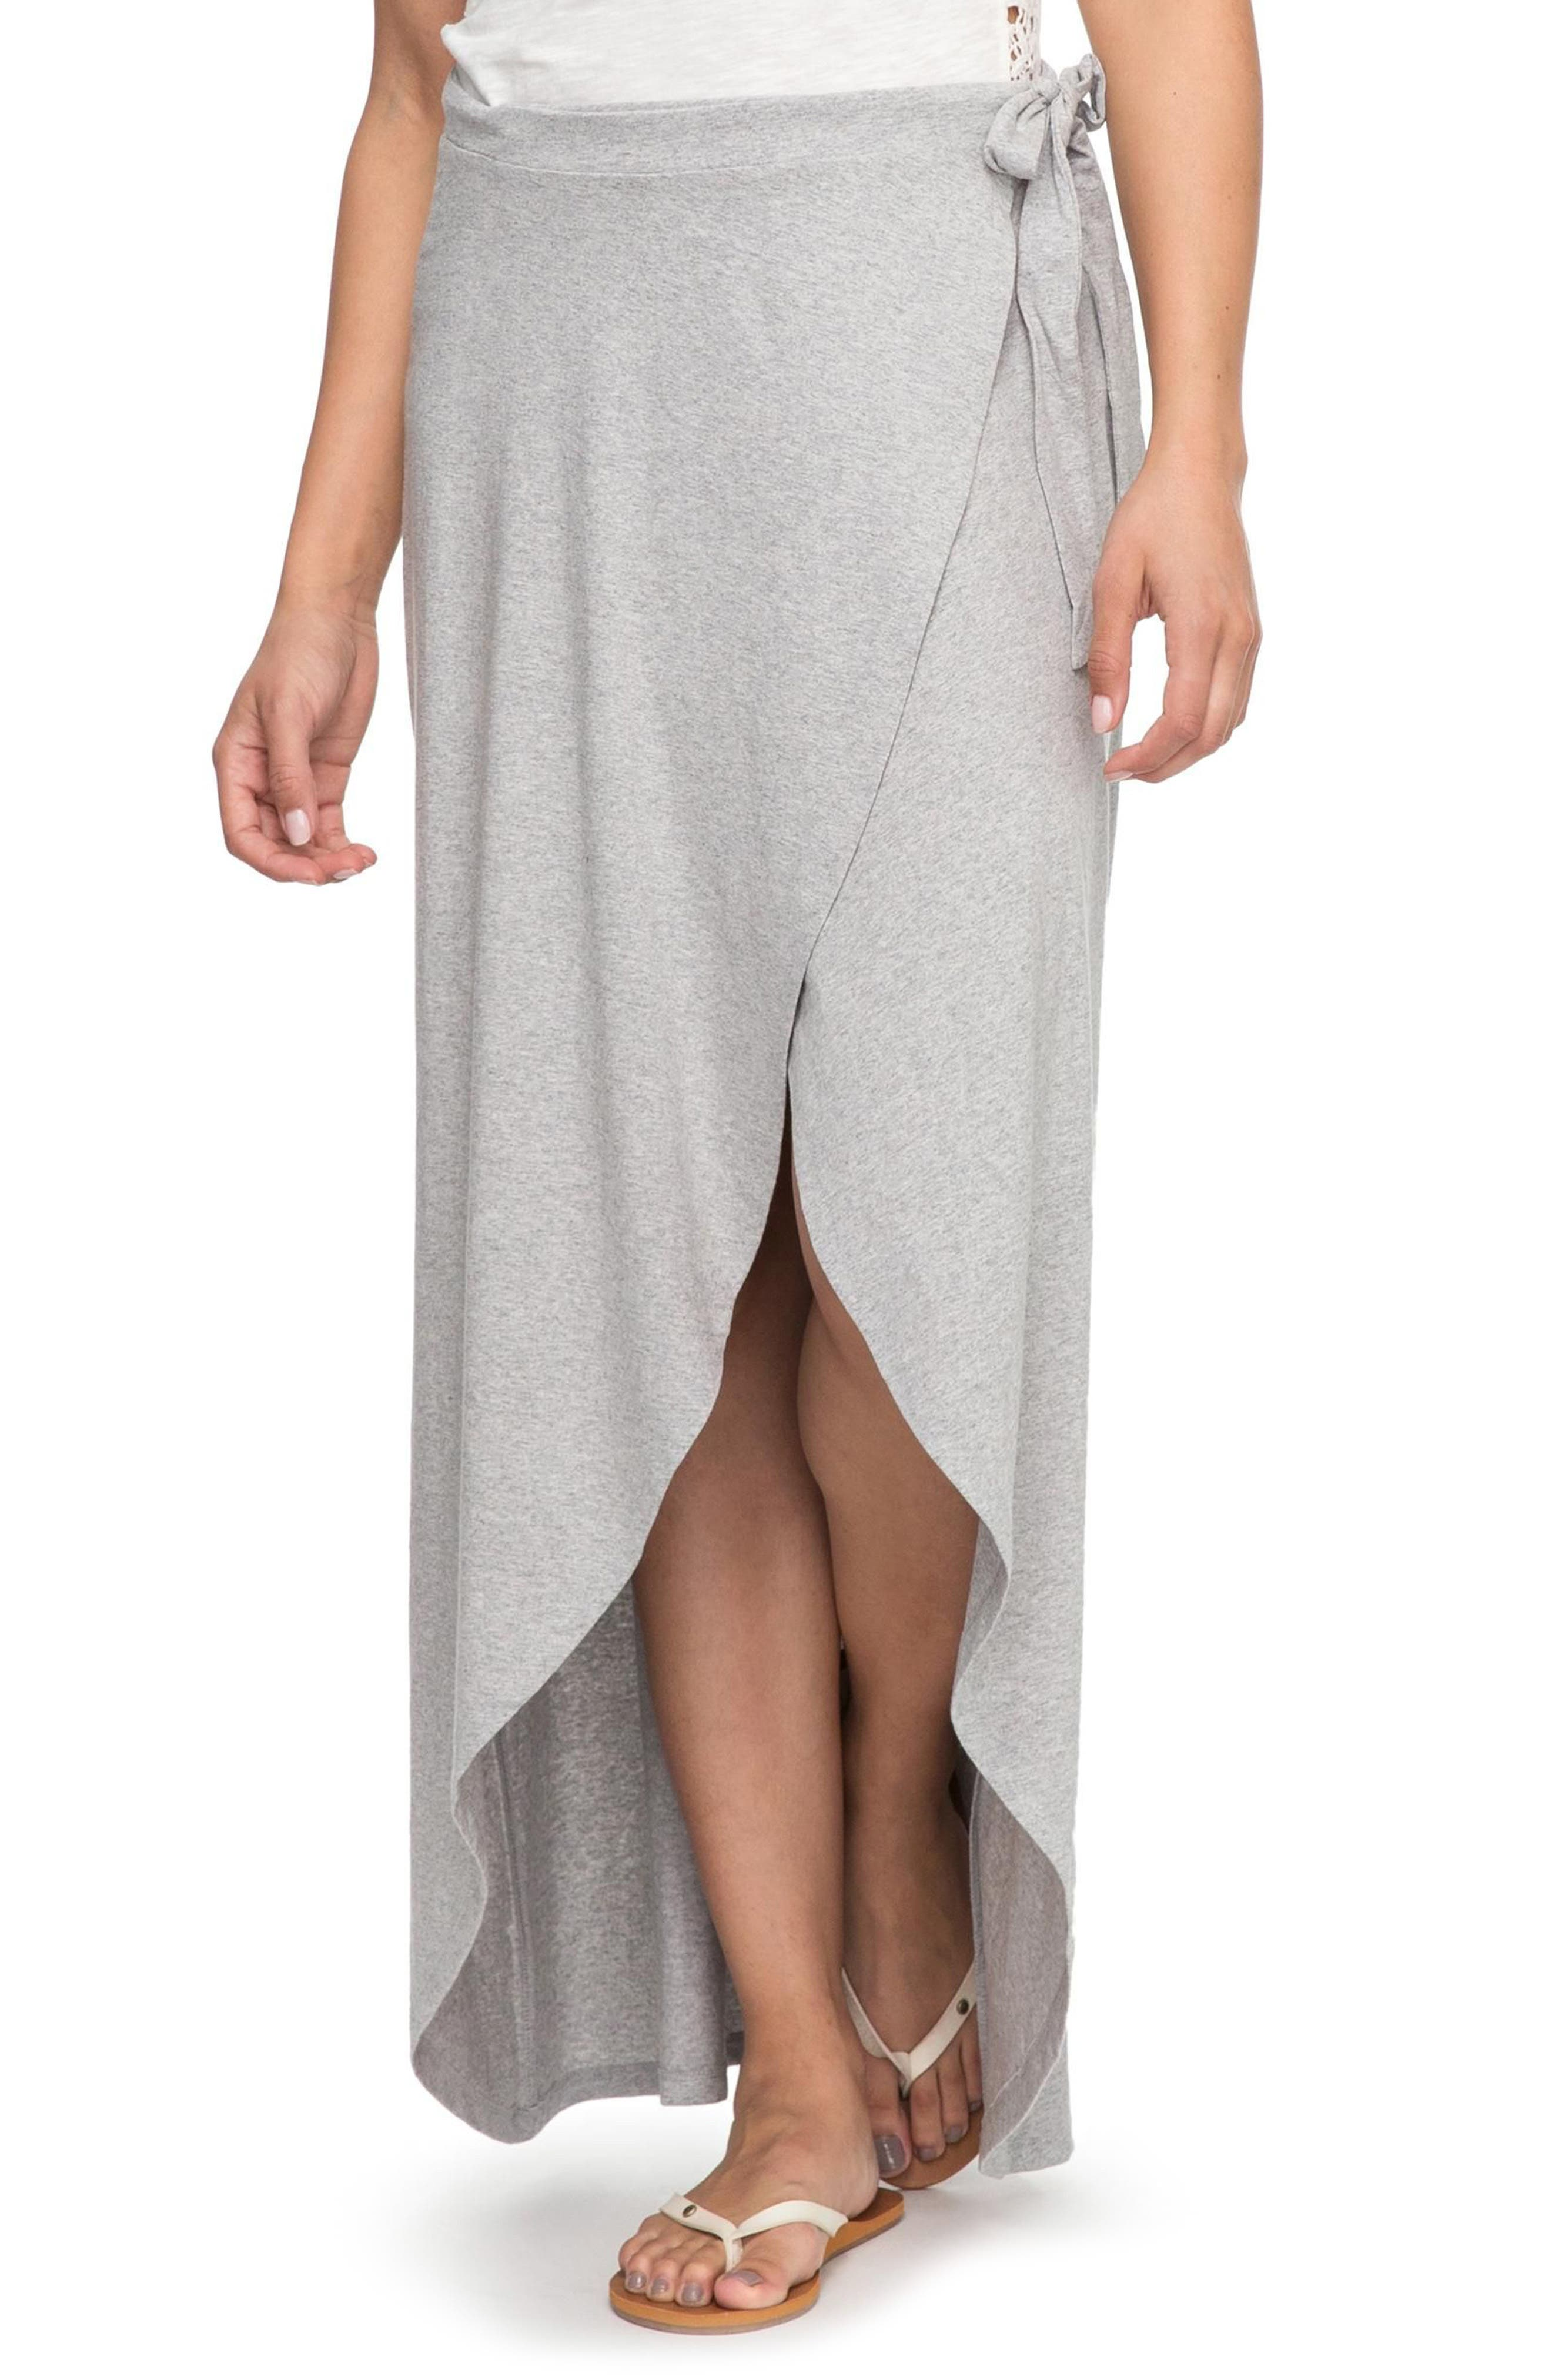 Everlasting Afternoon Long Wrap Skirt,                             Main thumbnail 1, color,